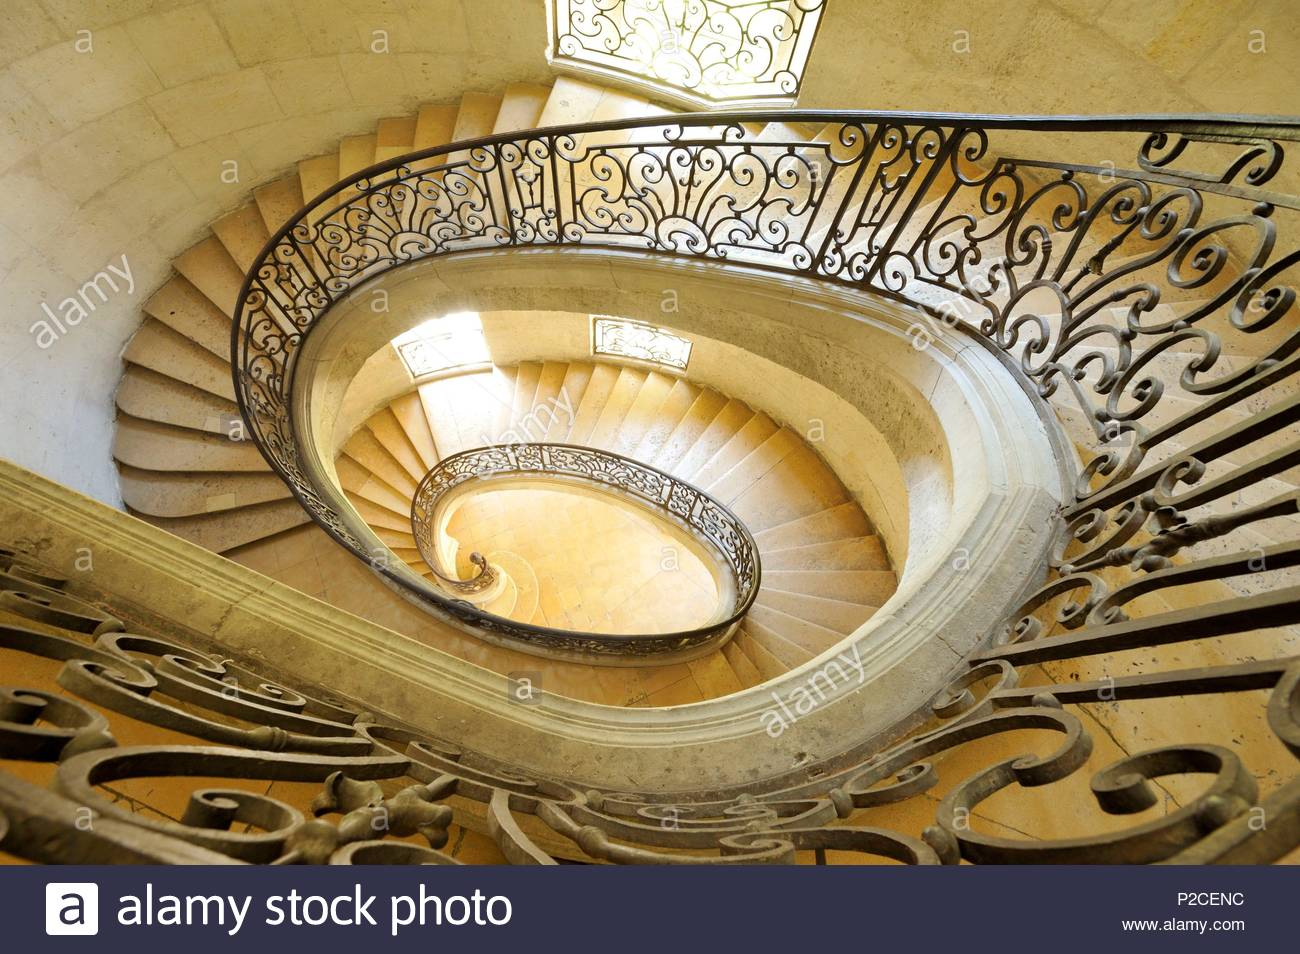 France, Aisne, Premontre, Premontre Abbey, Abbey Palace Of The Former  Premontre Abbey, Monumental Suspended Staircase Dating From 1846